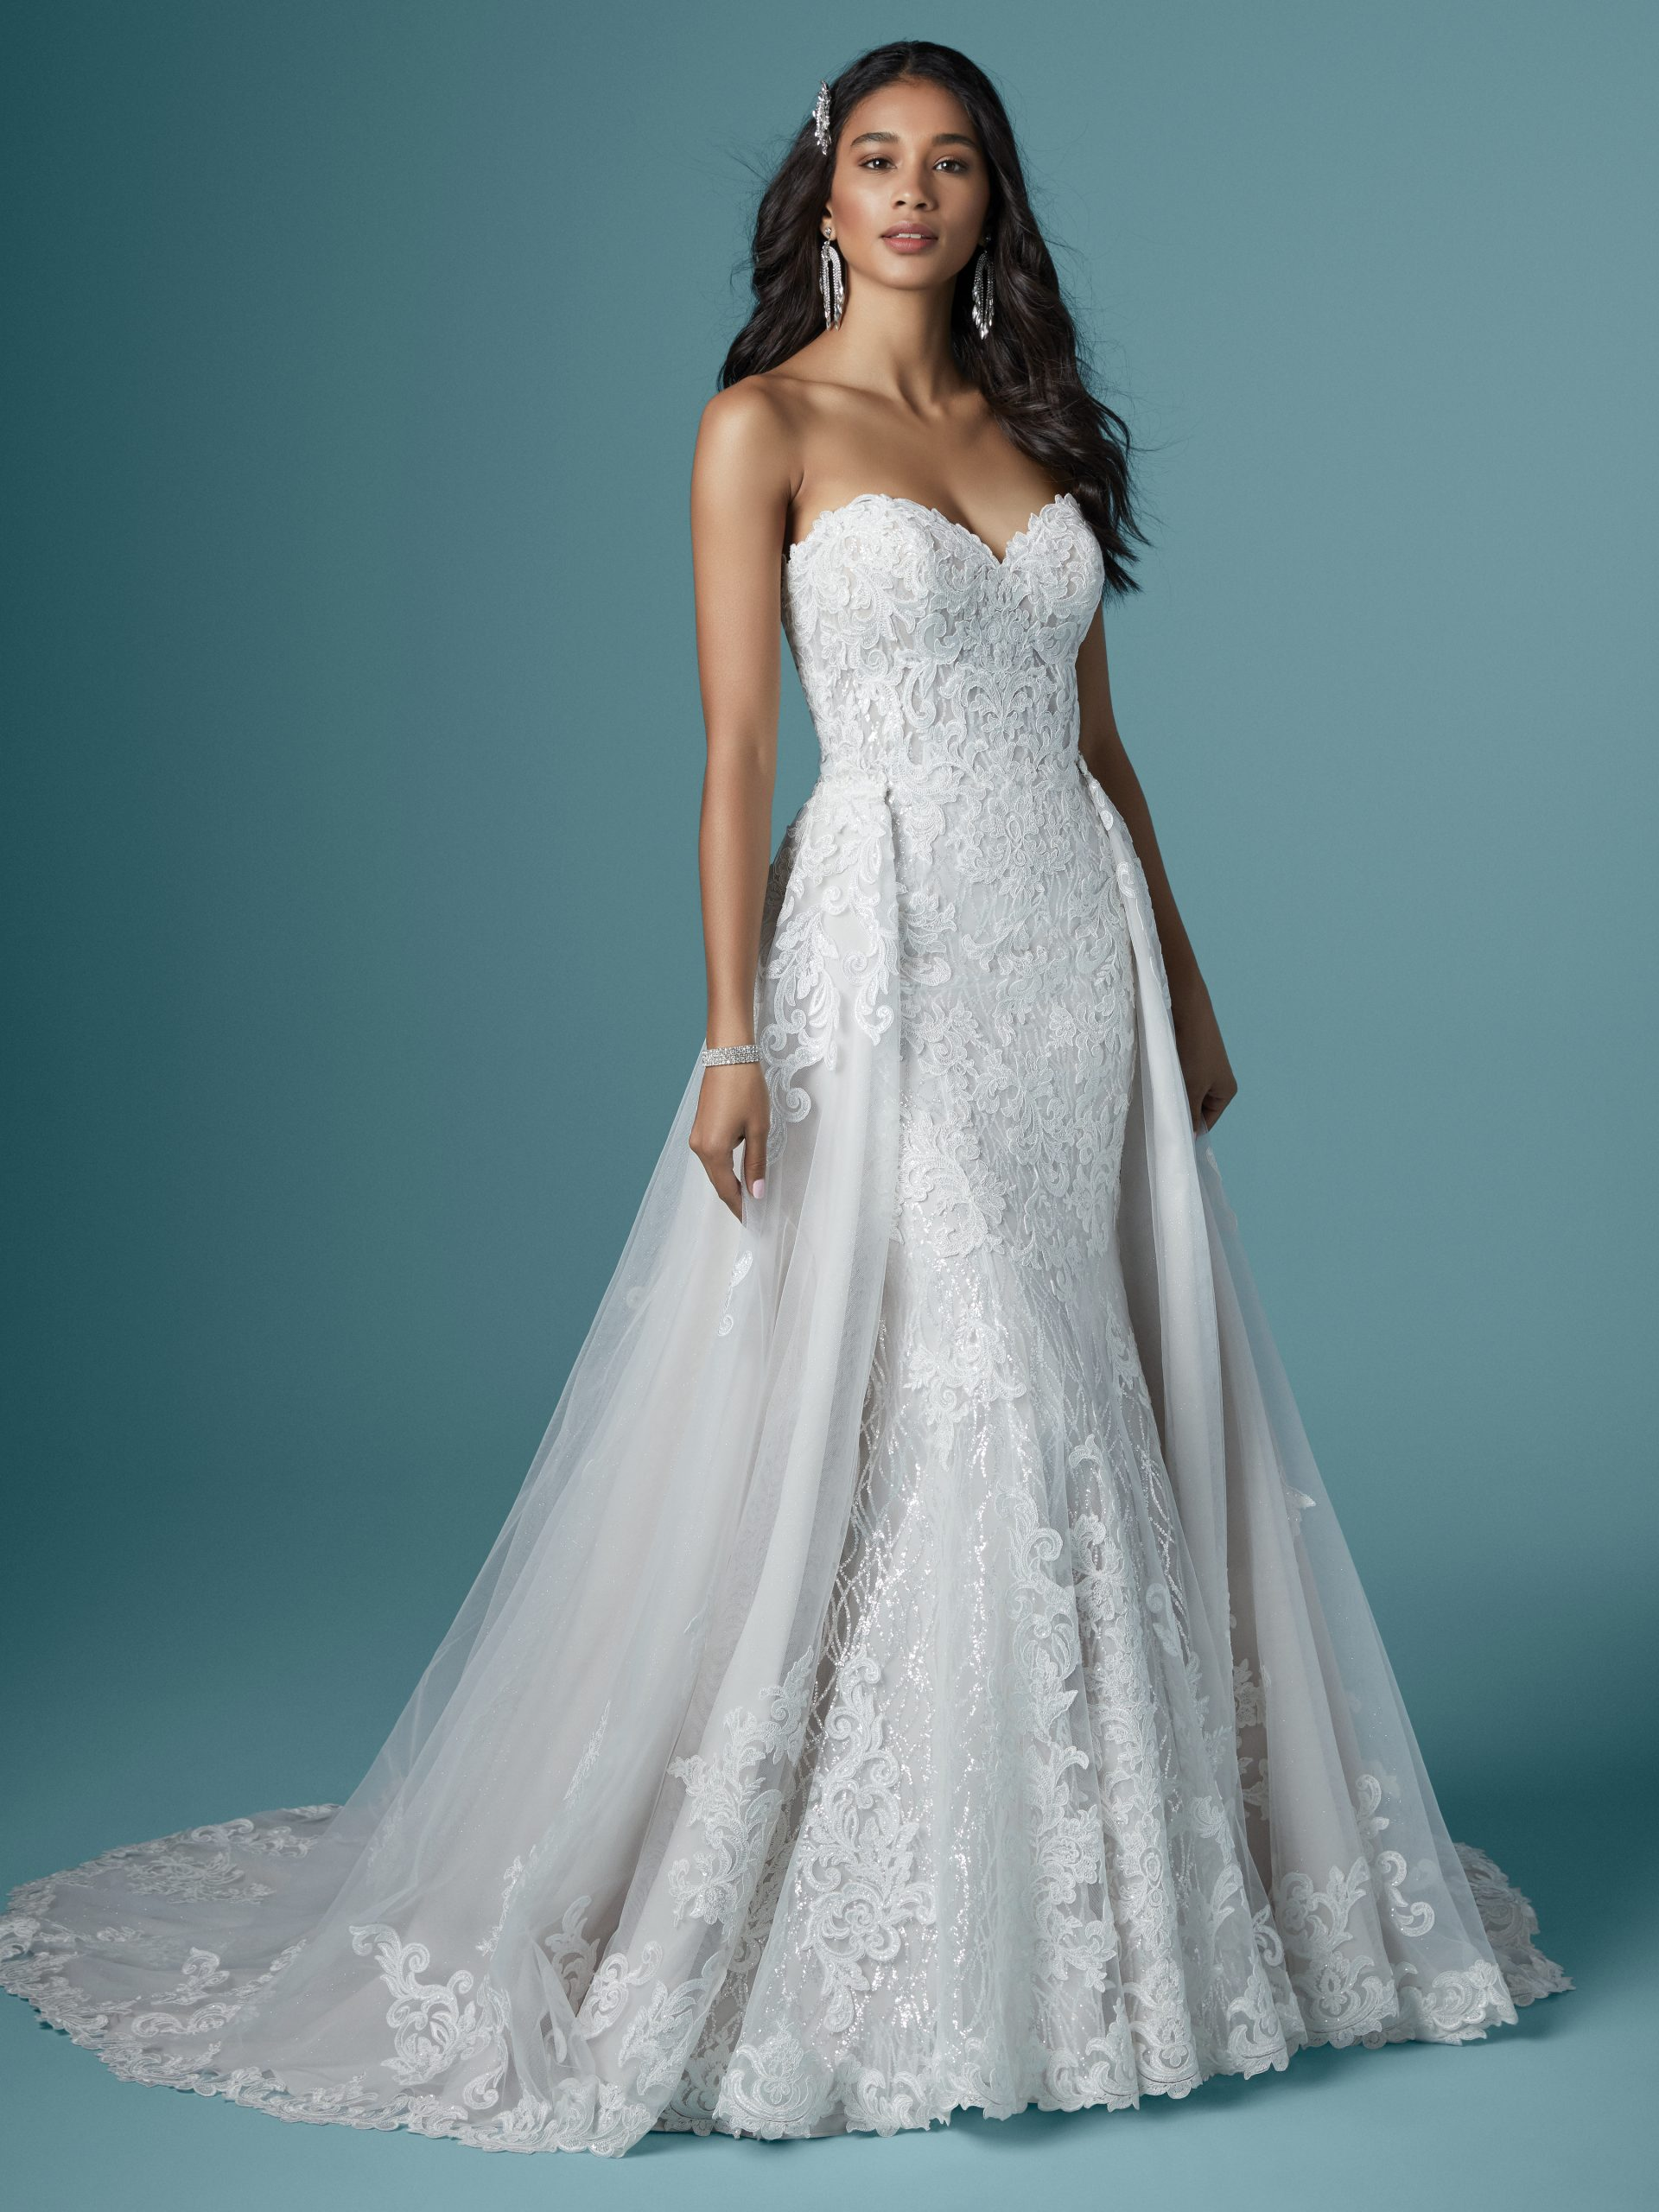 Strapless Lace Mermaid Wedding Dress Called Kaysen by Maggie Sottero